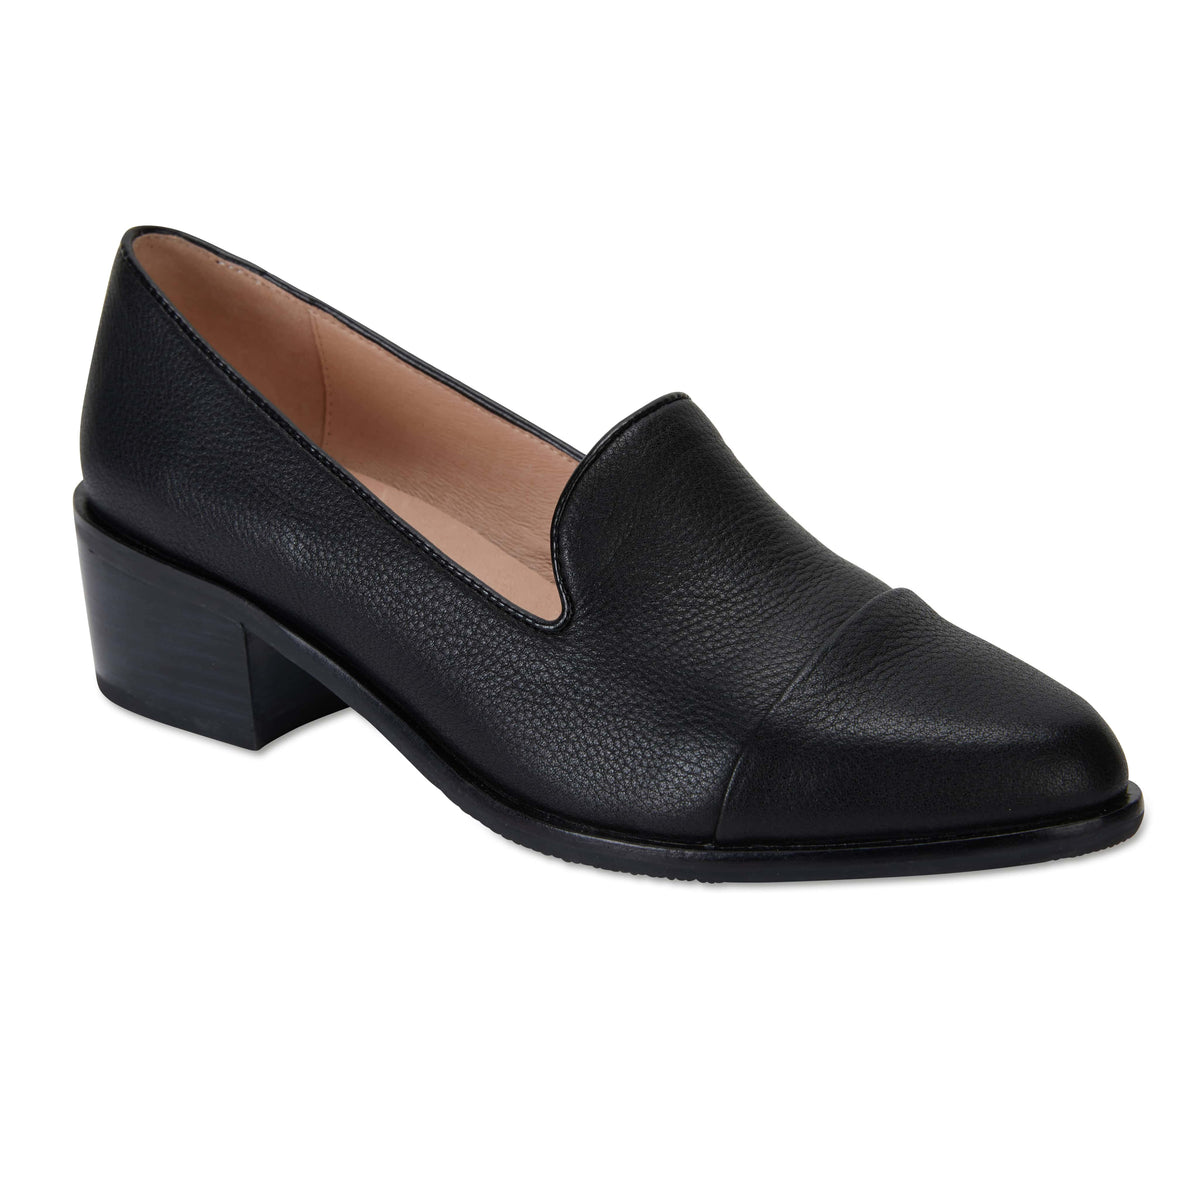 Expert Loafer in Black Leather